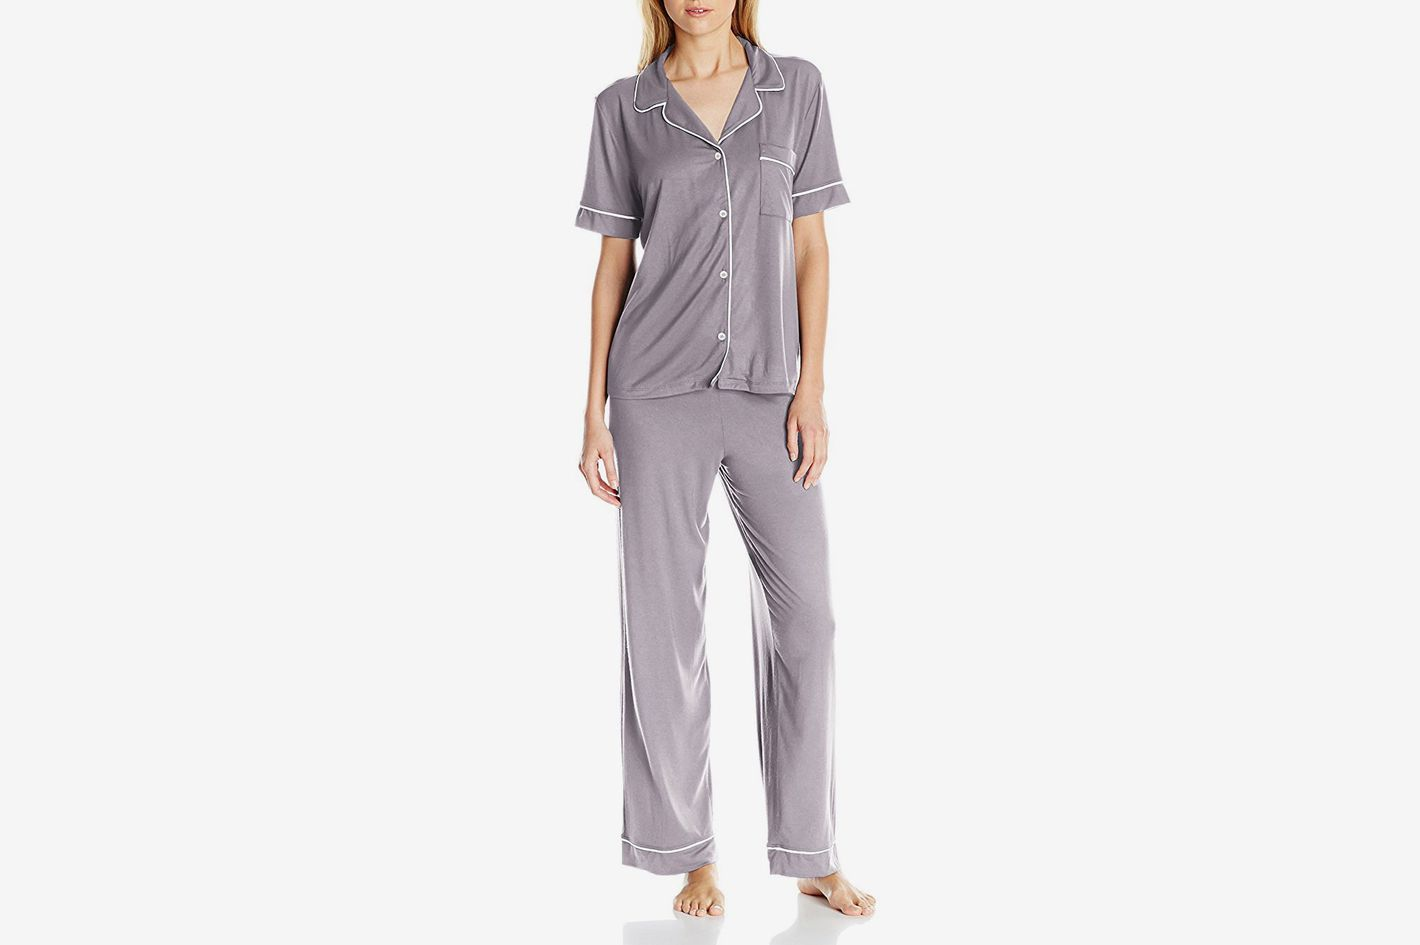 86603bd289 Eberjey Women s Gisele Pajama Sleepwear Set at Amazon